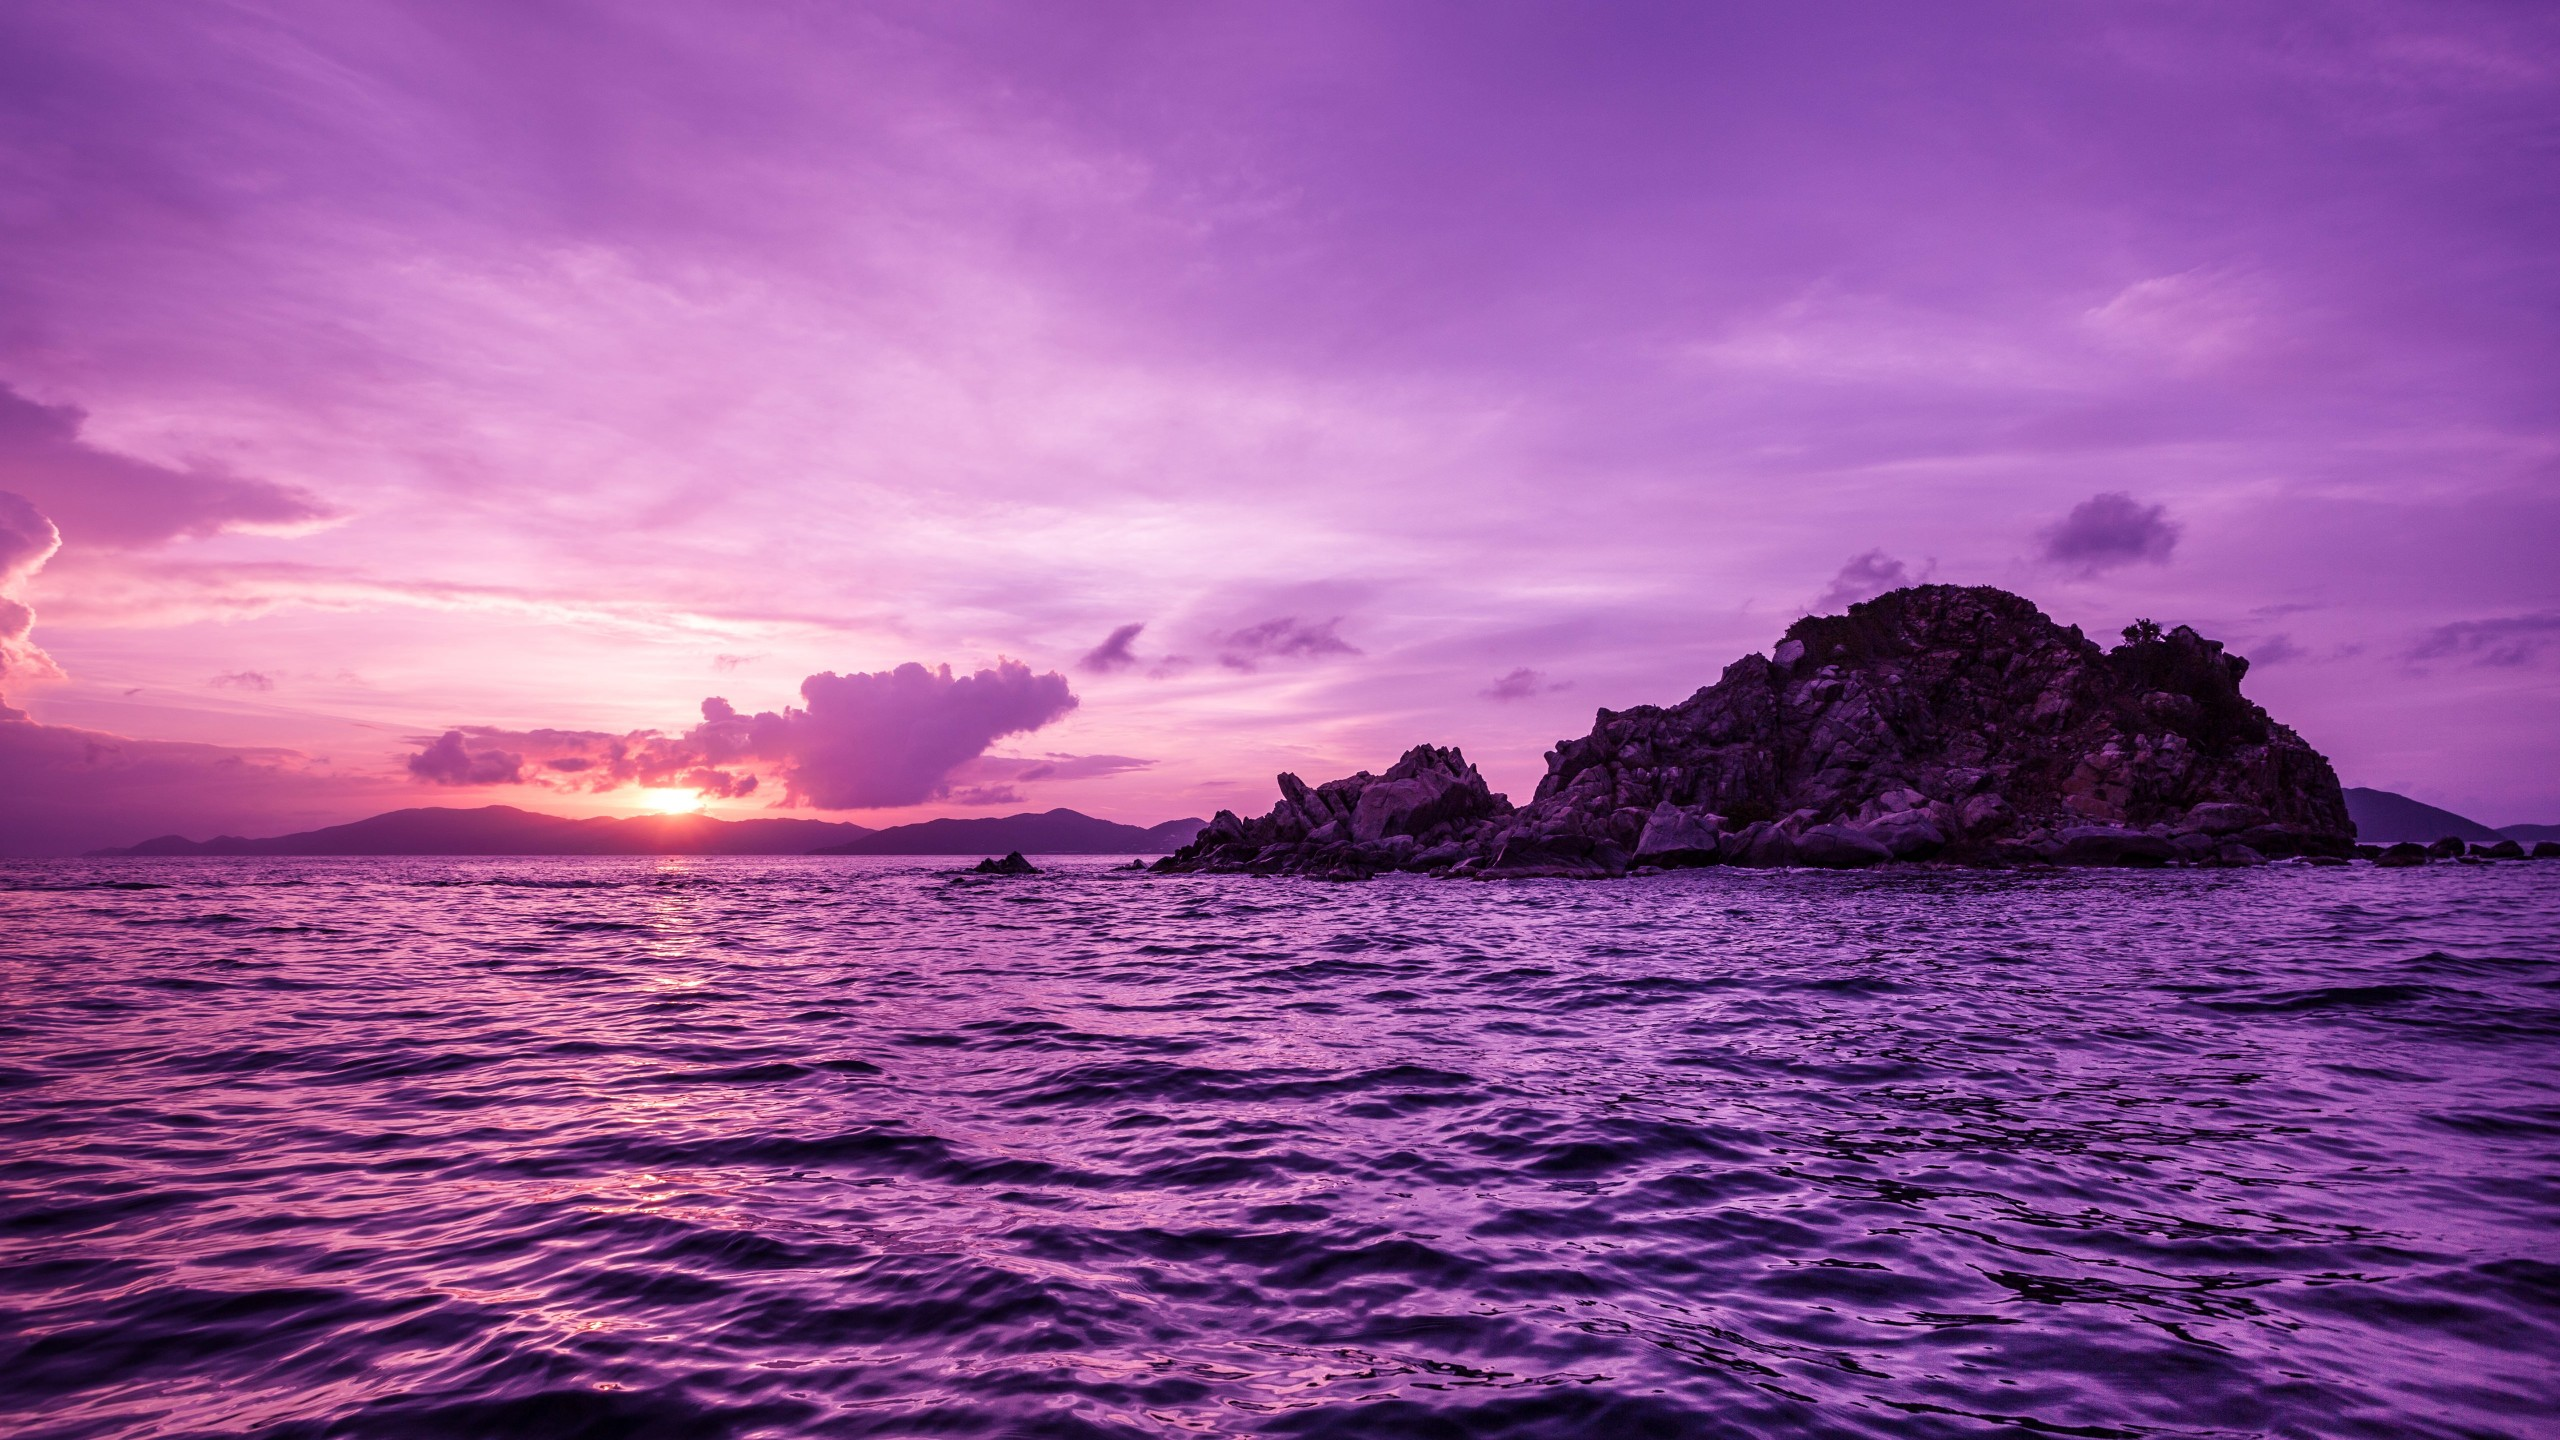 Pelican Island Sunset, British Virgin Islands Wallpaper for Desktop 2560x1440